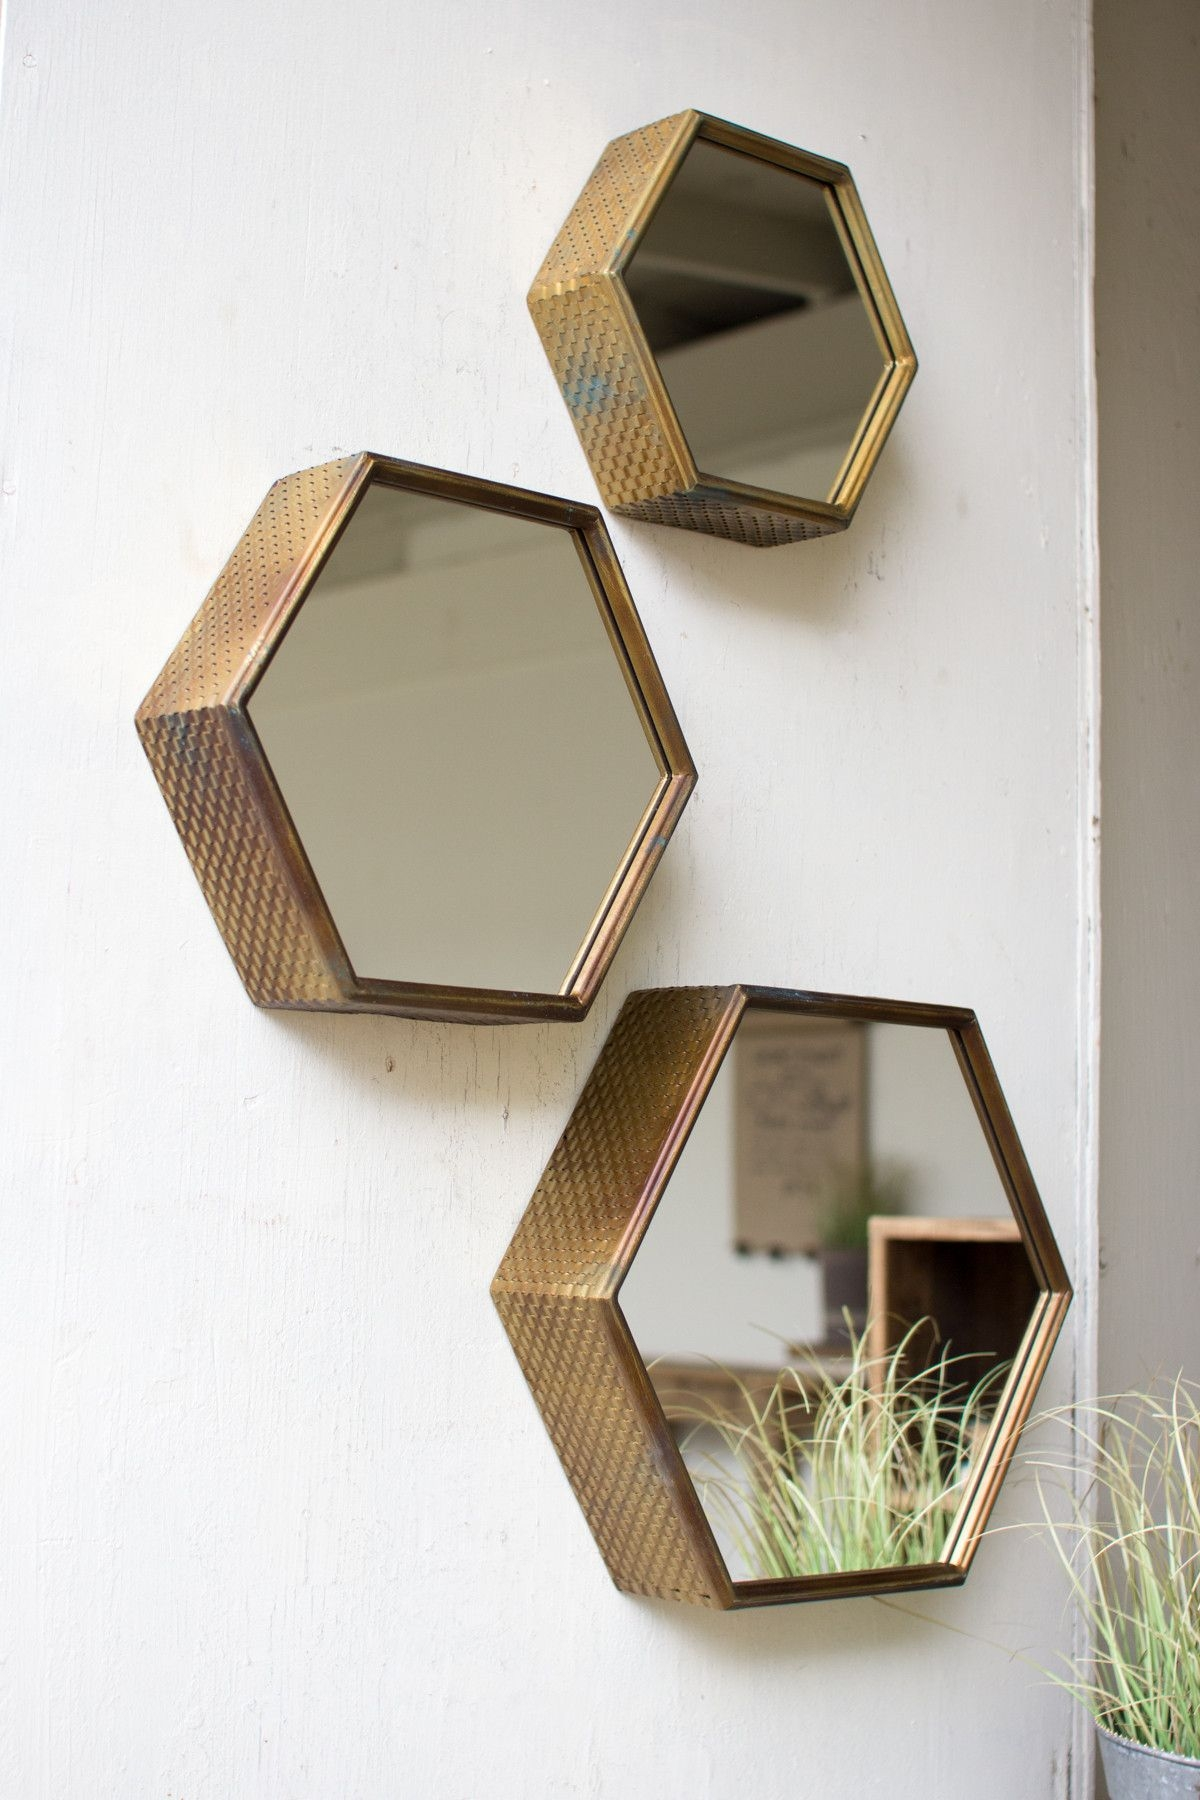 Brass Hexagon Mirrors Shelf Ideas Hexagons And Large With Brass Mirrors For Sale (Image 4 of 15)